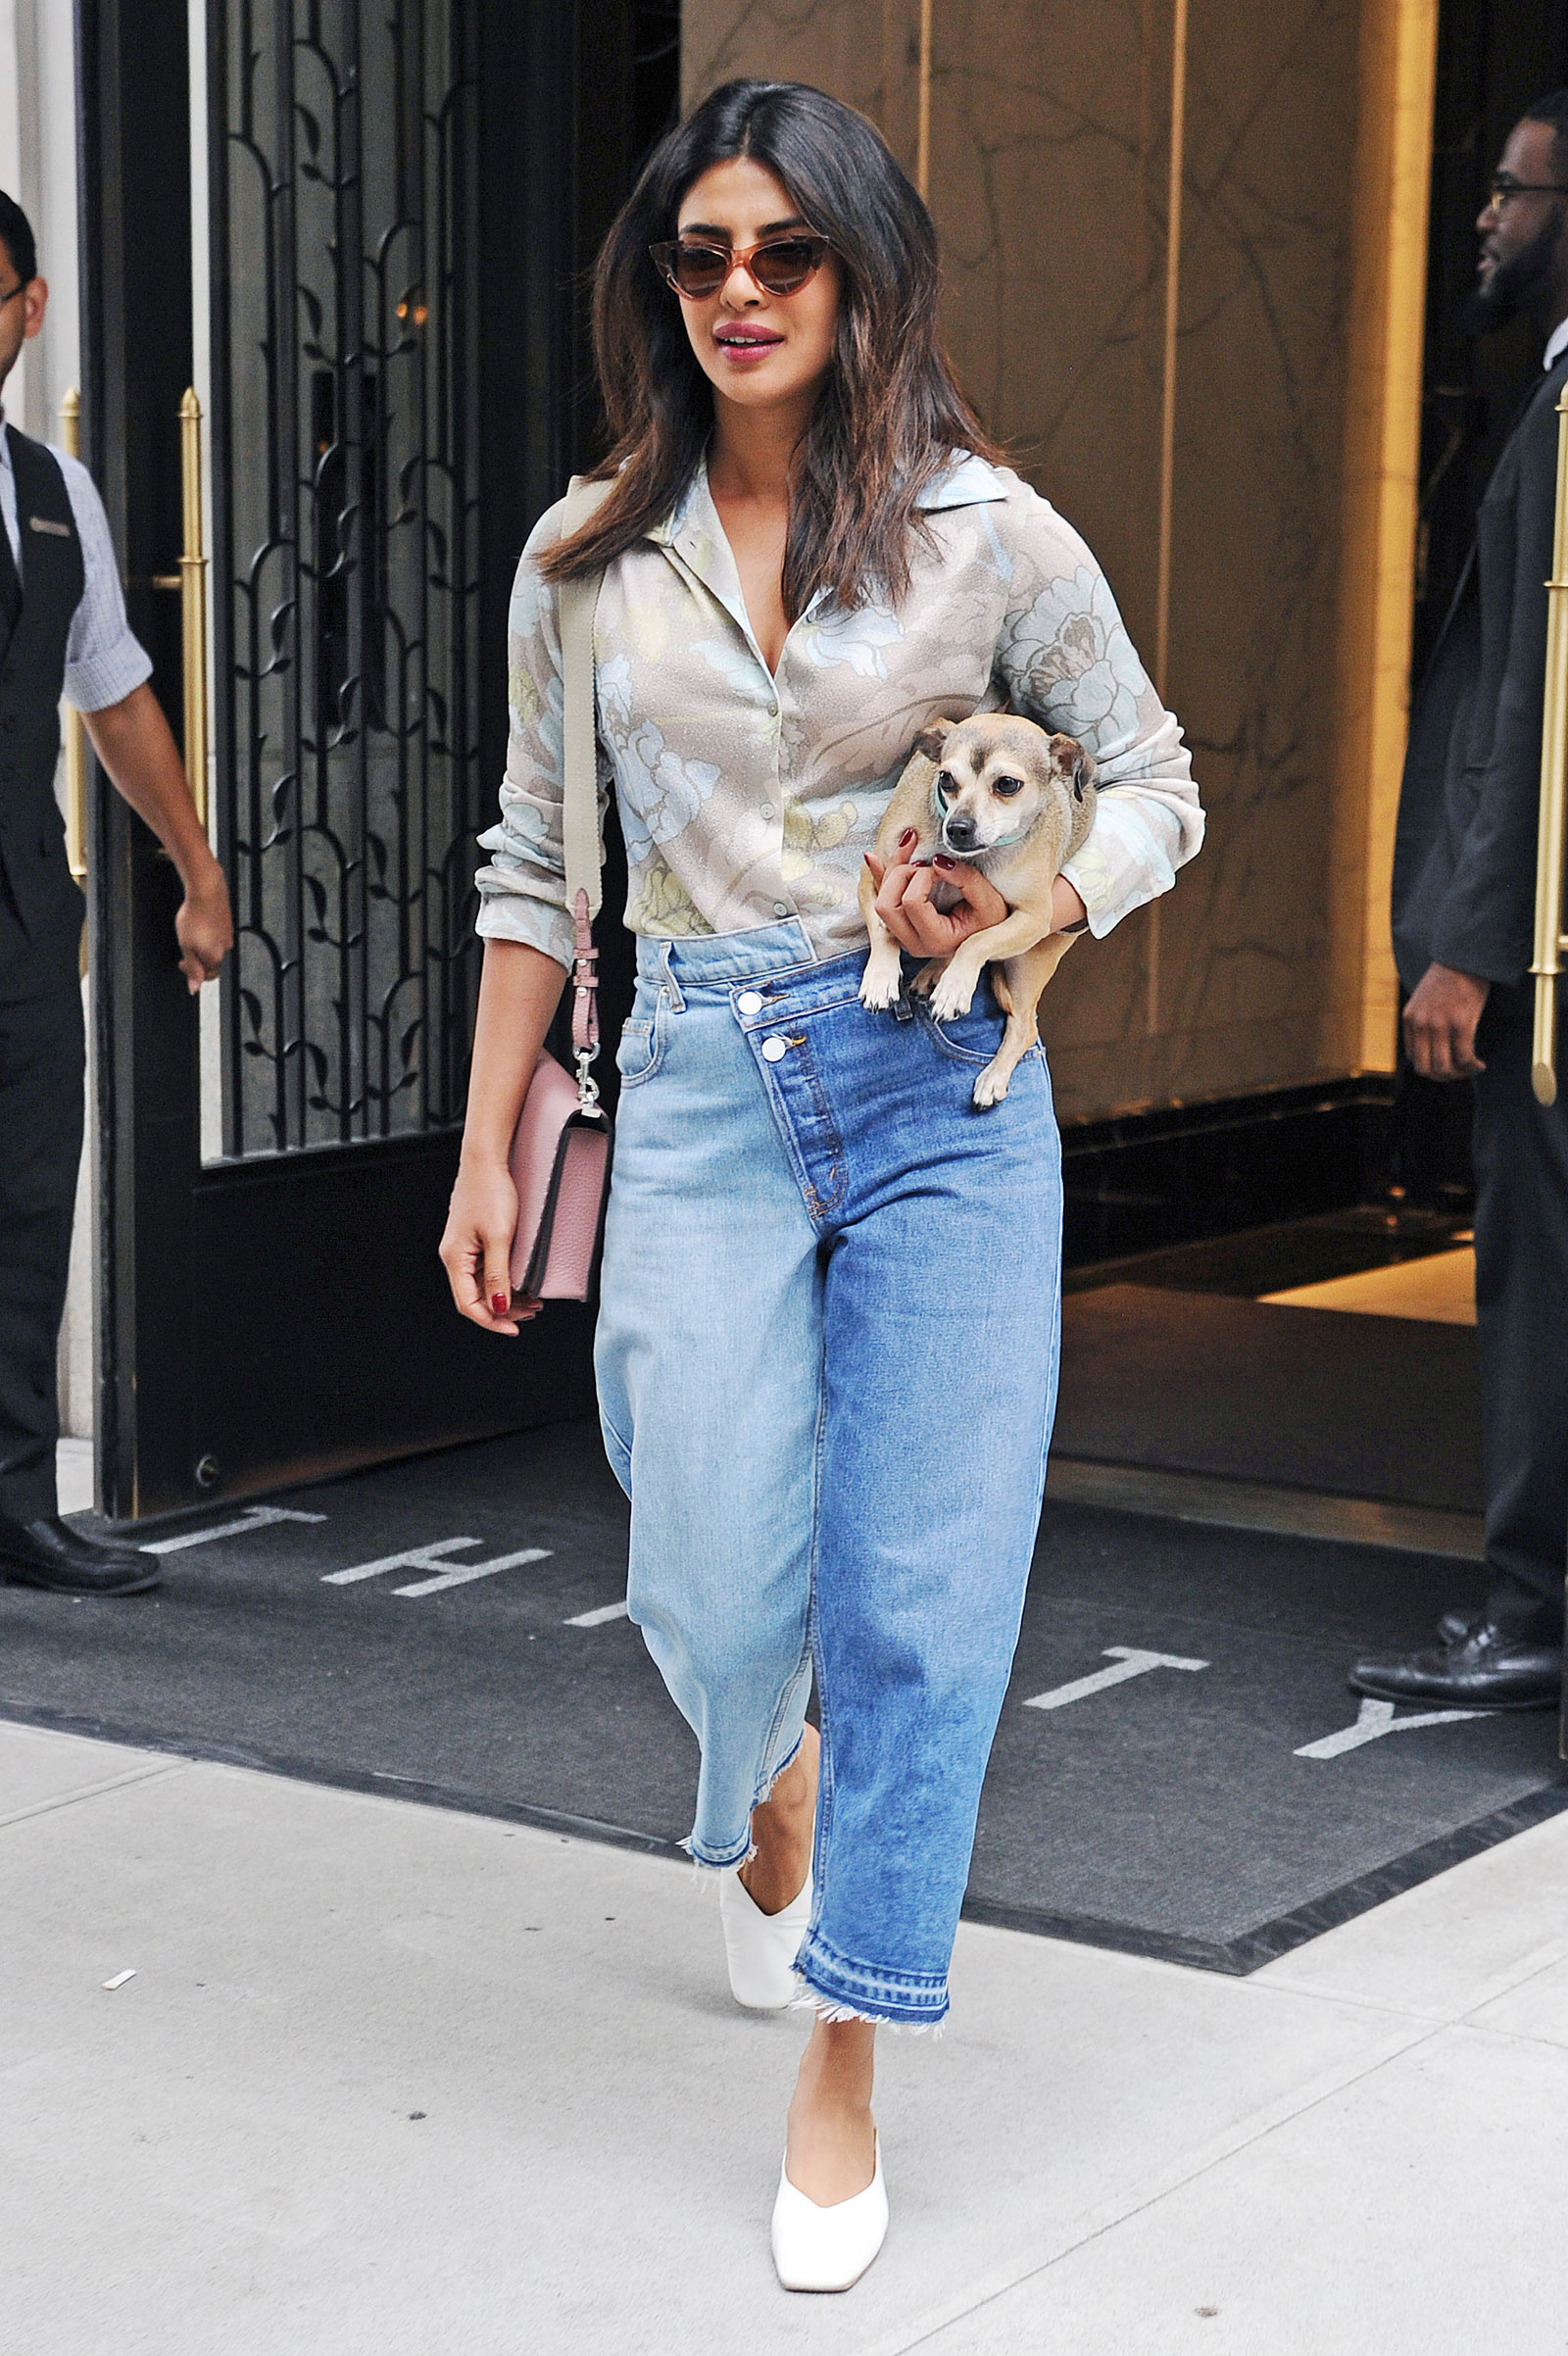 Priyanka Chopra's floral blouse and Monse split wash jeans look for less